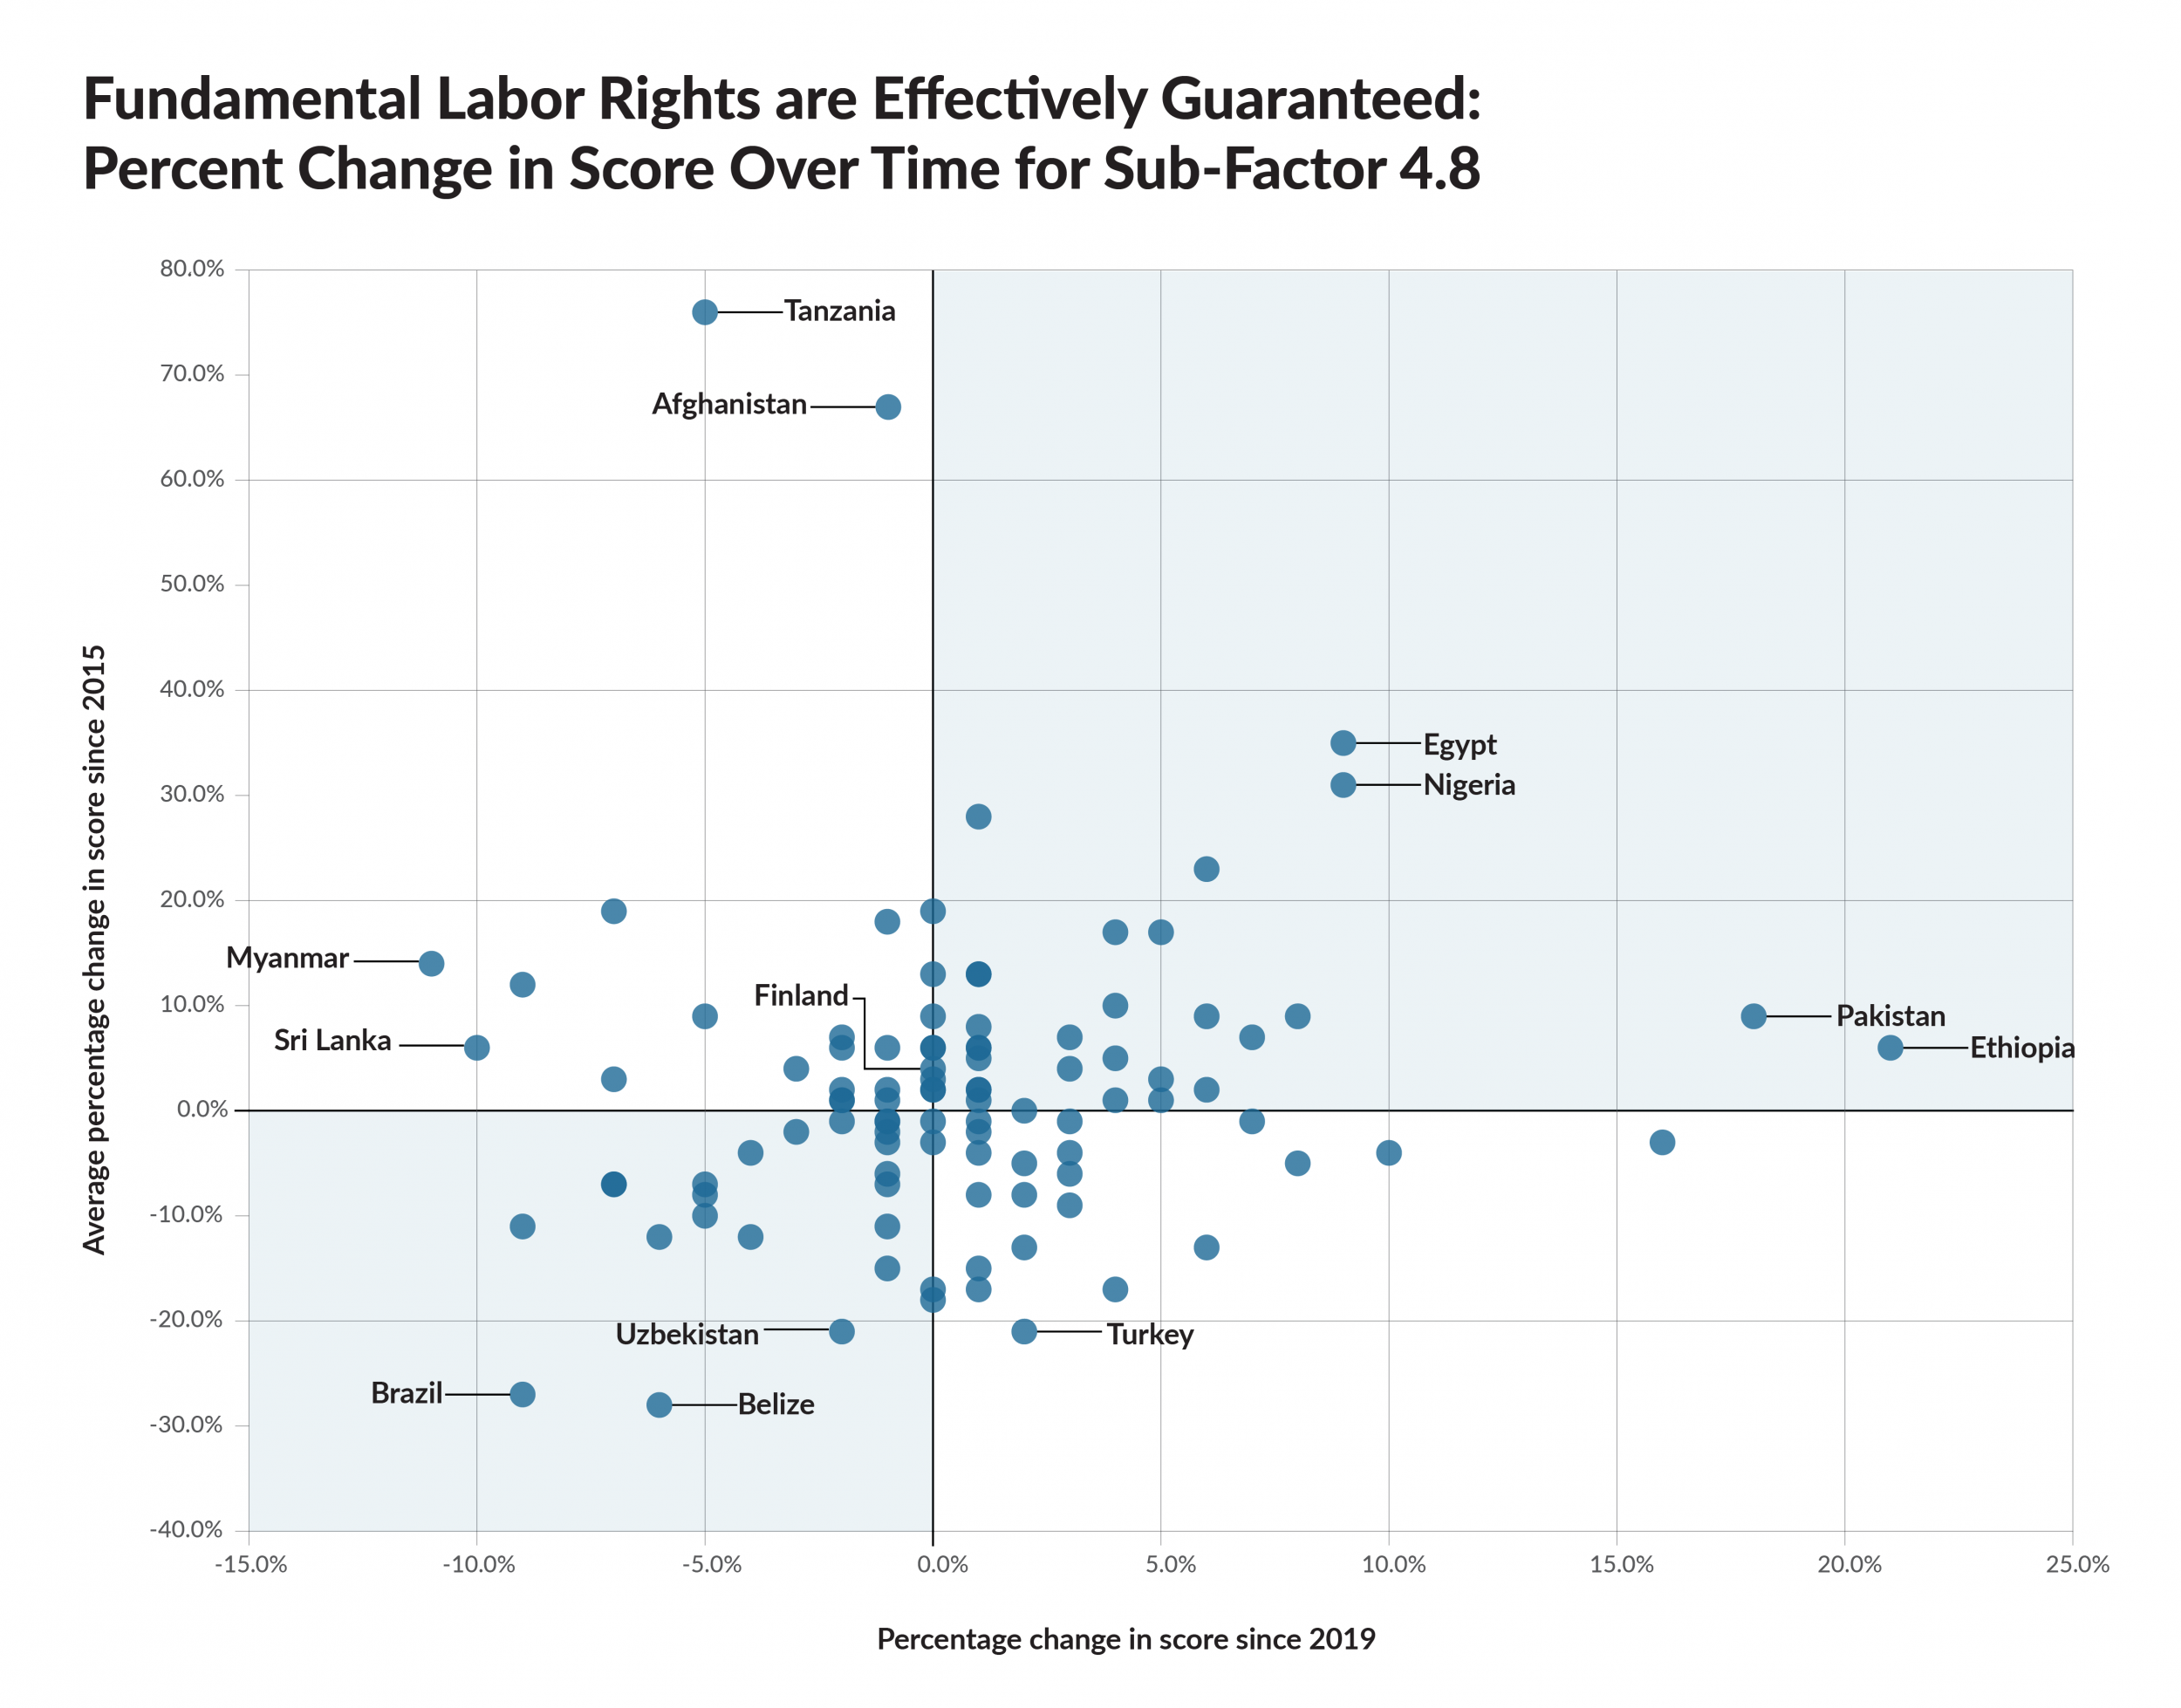 Fundamental Labor Rights are Effectively Guaranteed: Percent Change for Subfactor 4.8